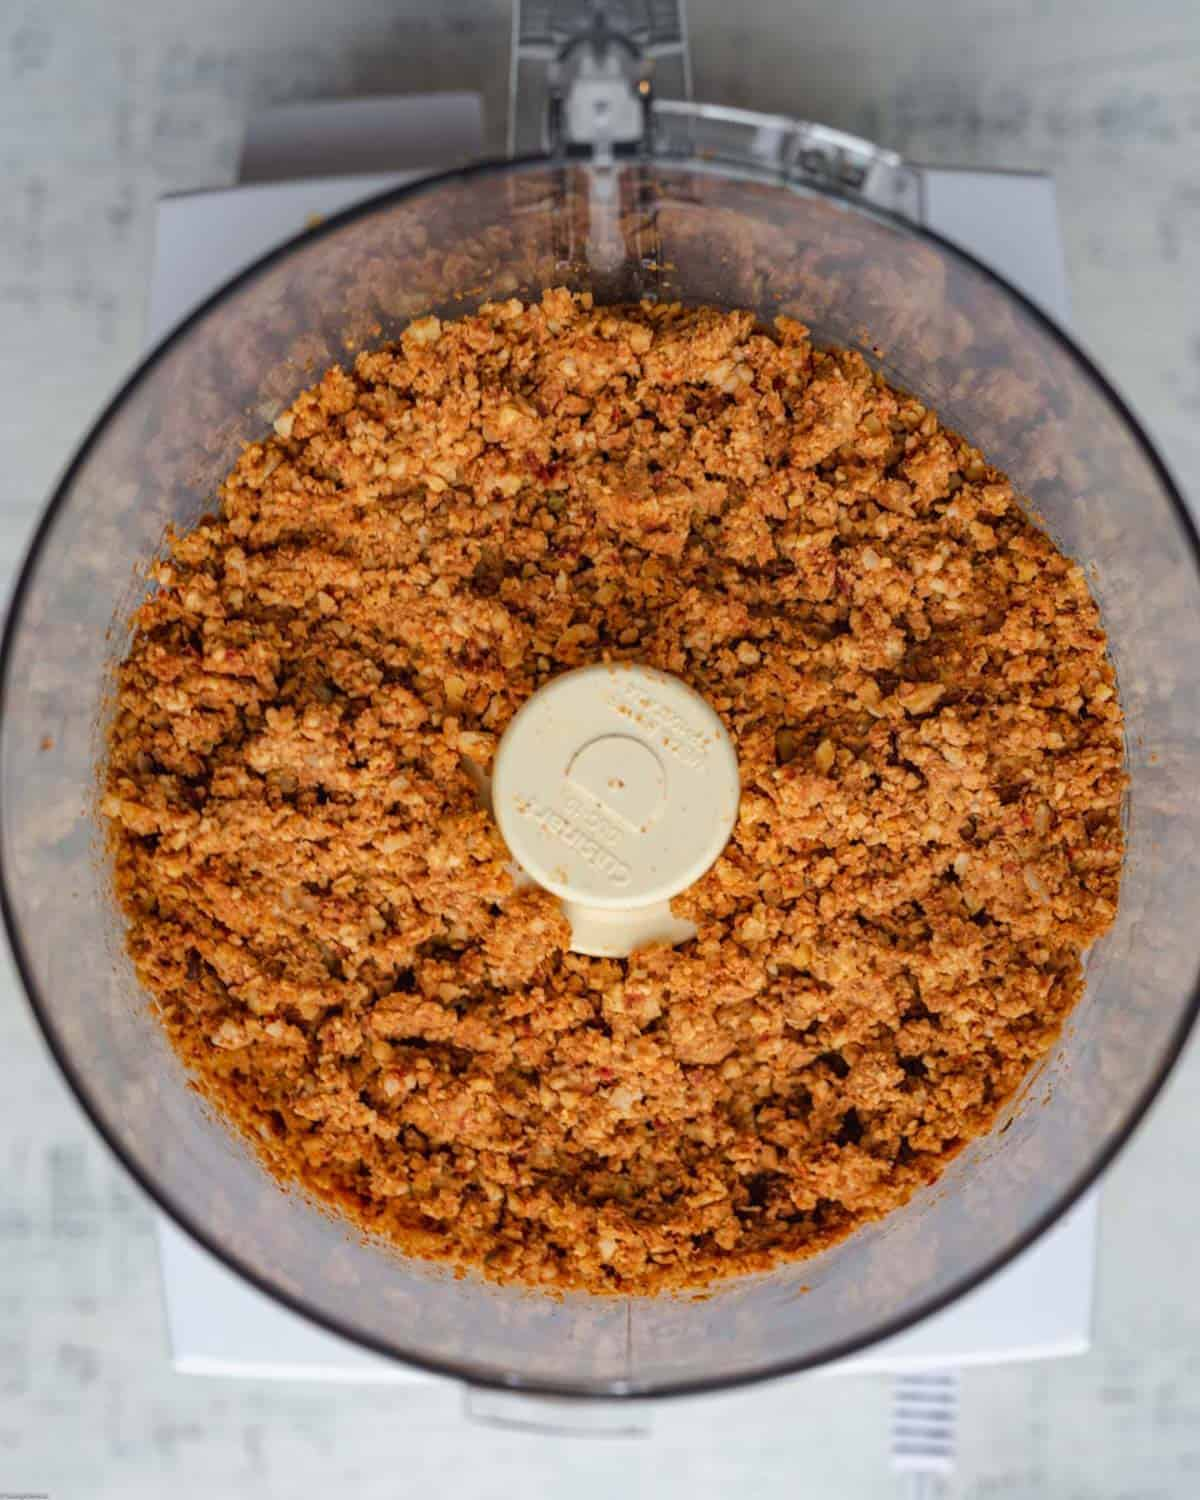 Crumbled tempeh with seasonings in a food processor for Sun-Dried Tomato Tempeh Burgers.